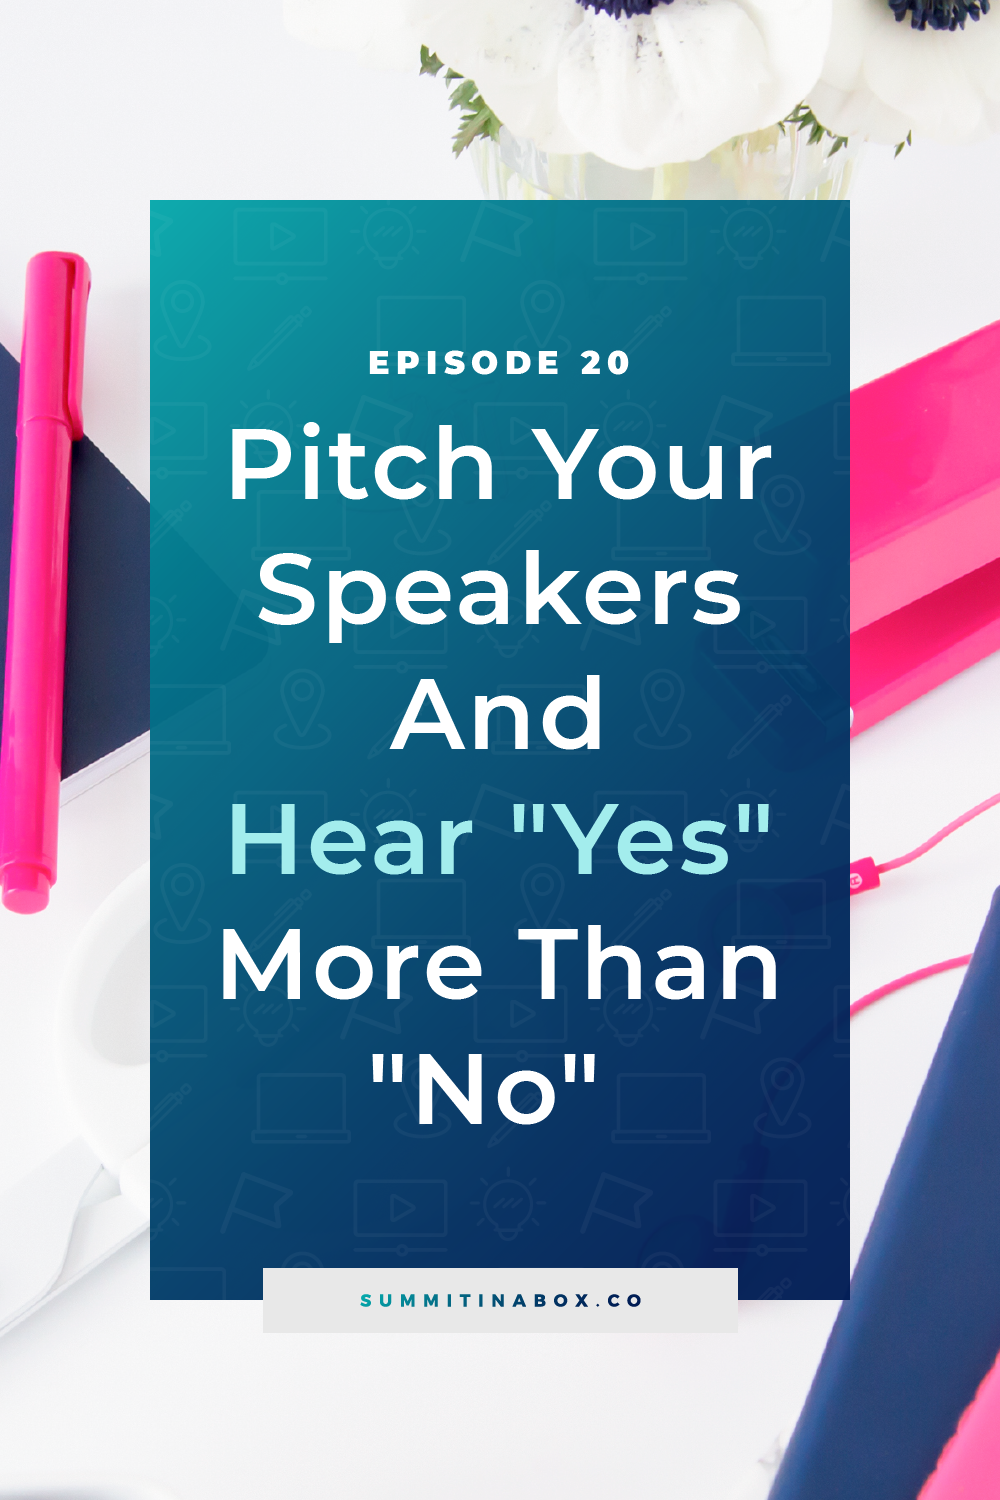 Let's talk about what to prepare before you pitch virtual summit speakers and what to include in your pitch to get a positive response!